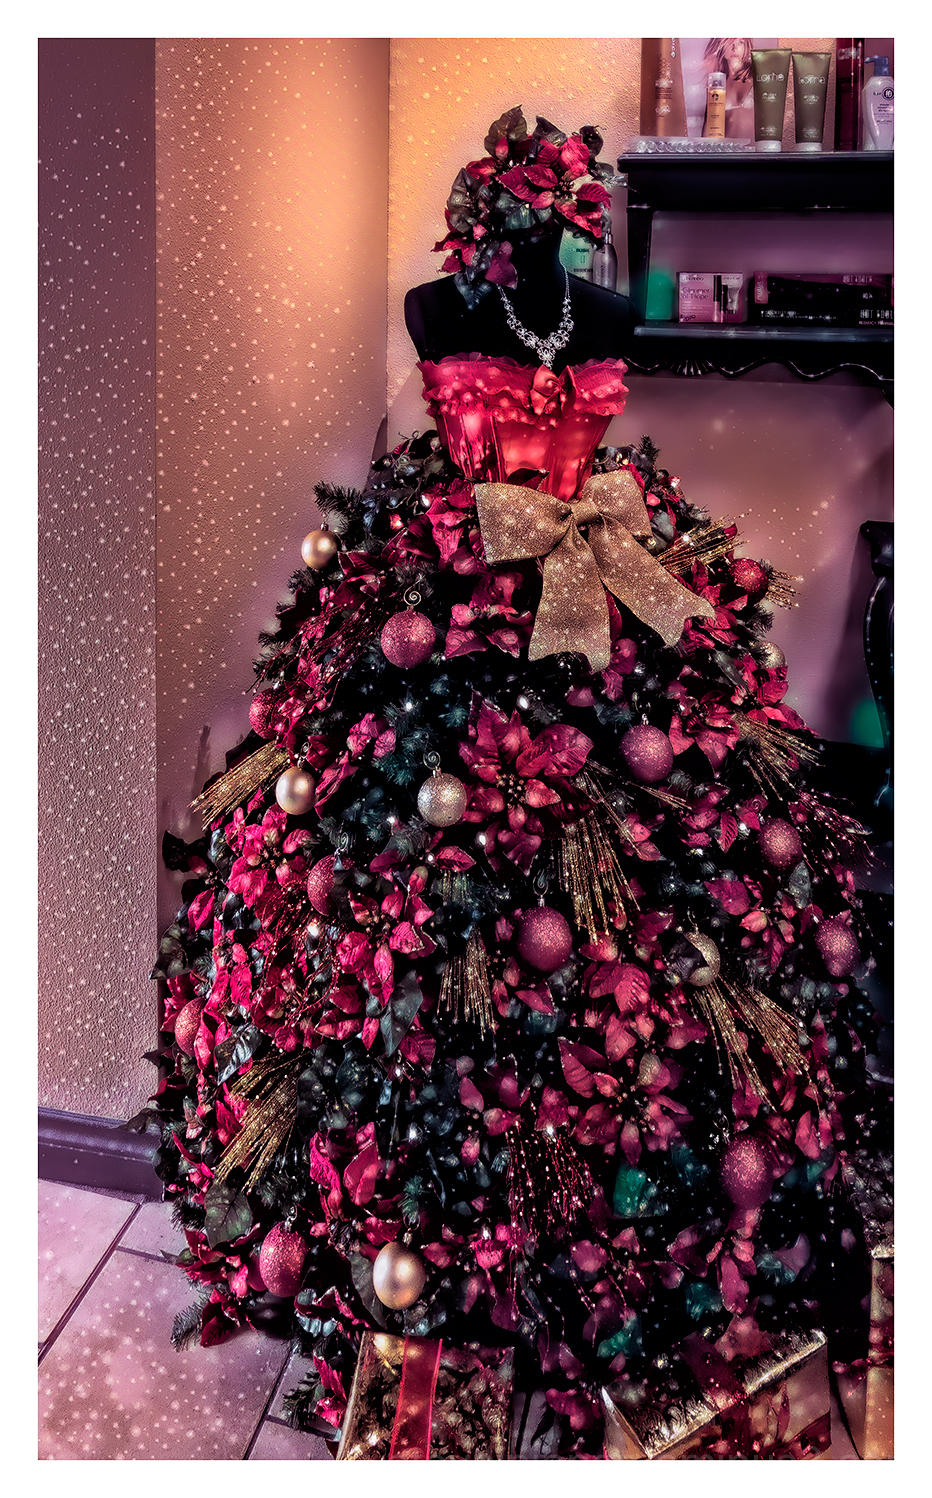 A Christmas tree seen at a hair salon.